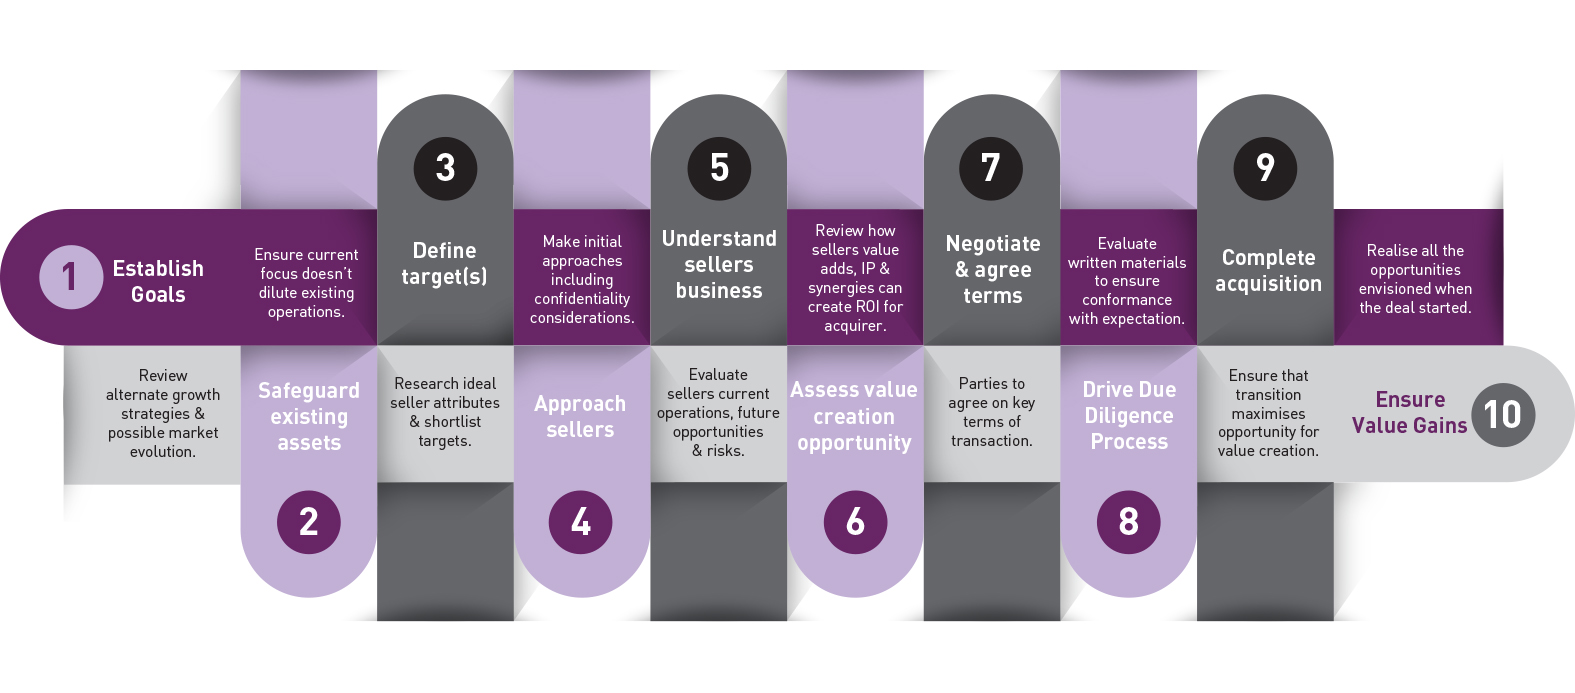 10 Step Acquisition Process